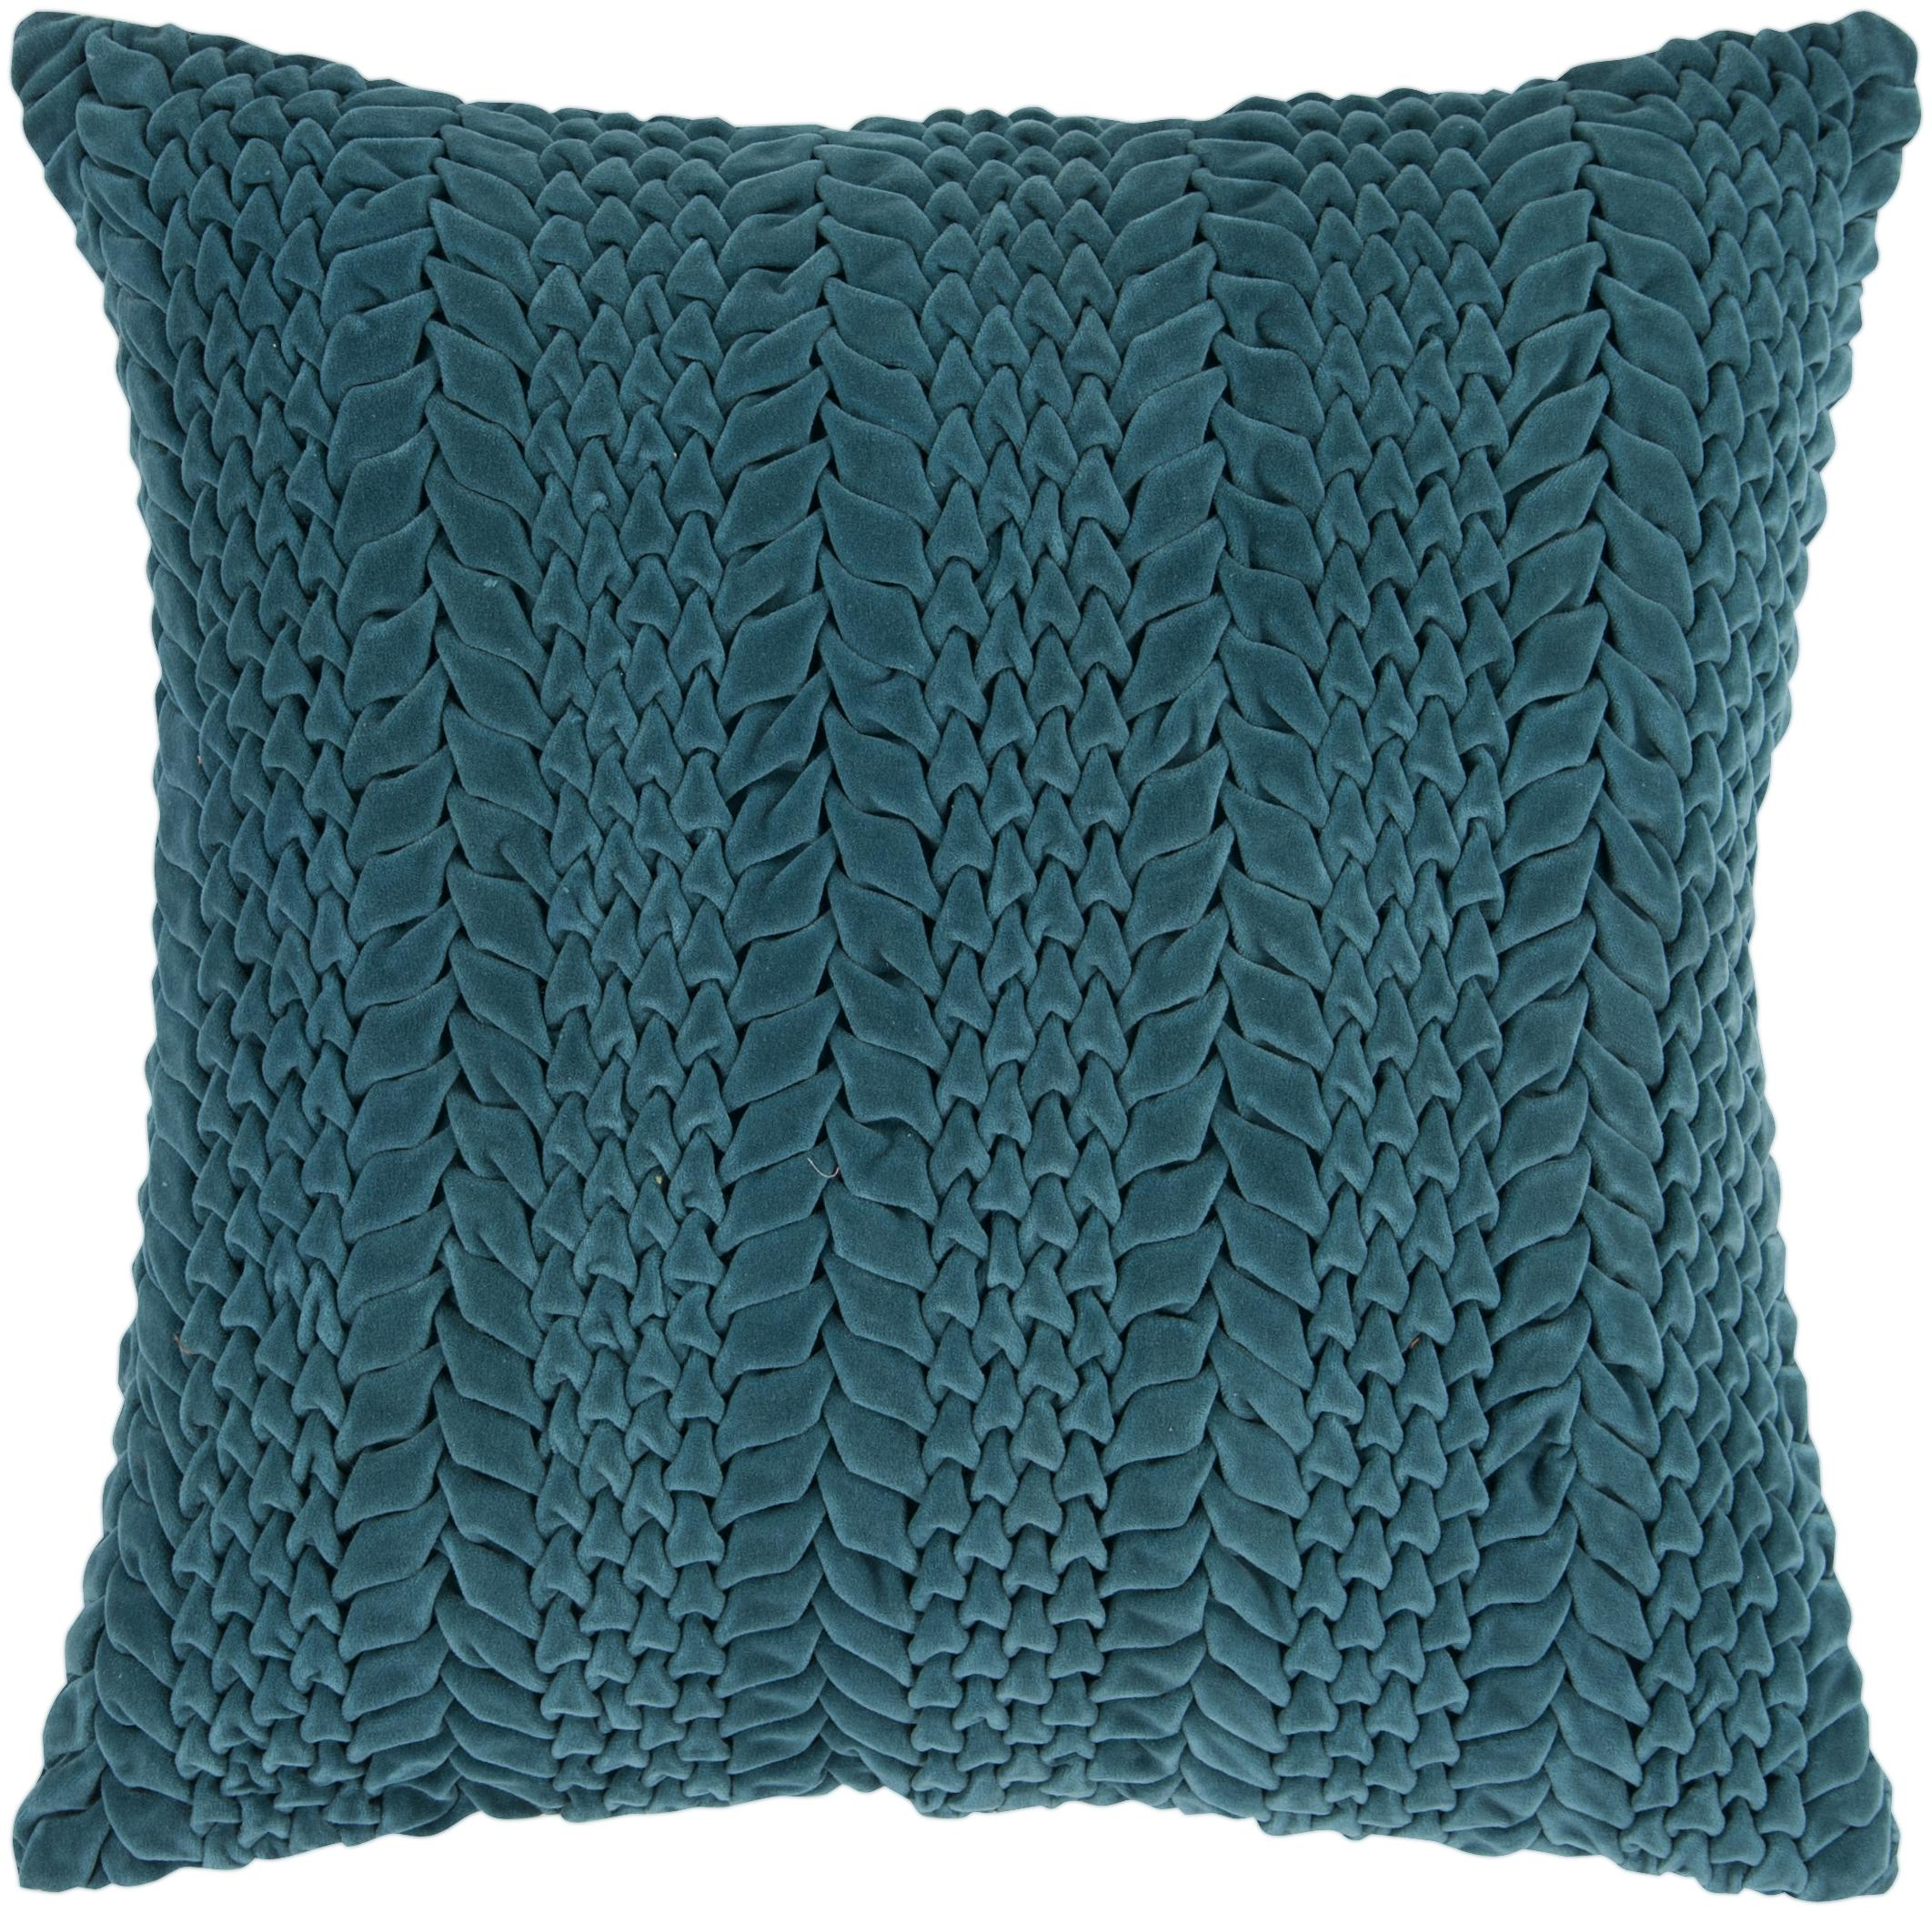 "Surya Pillows 18"" x 18"" Pillow - Item Number: P0279-1818P"